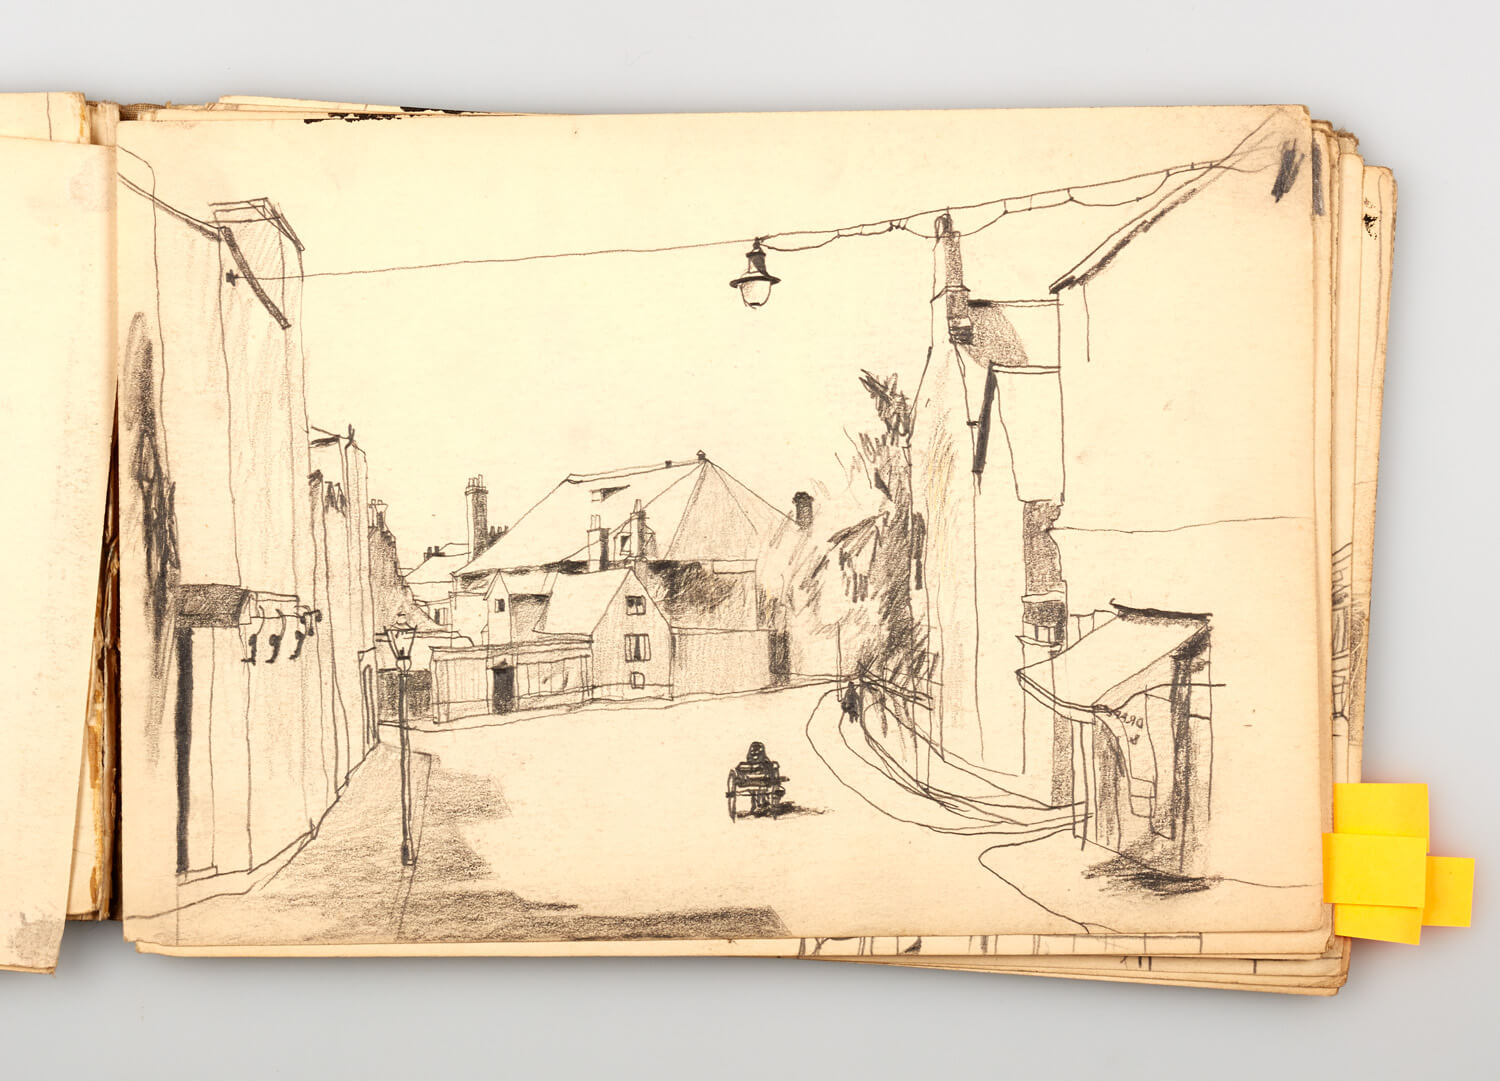 JB295 - Cornish sketch Book 1950 - 1950 - 17.5 x 25.5 cm - Pencil